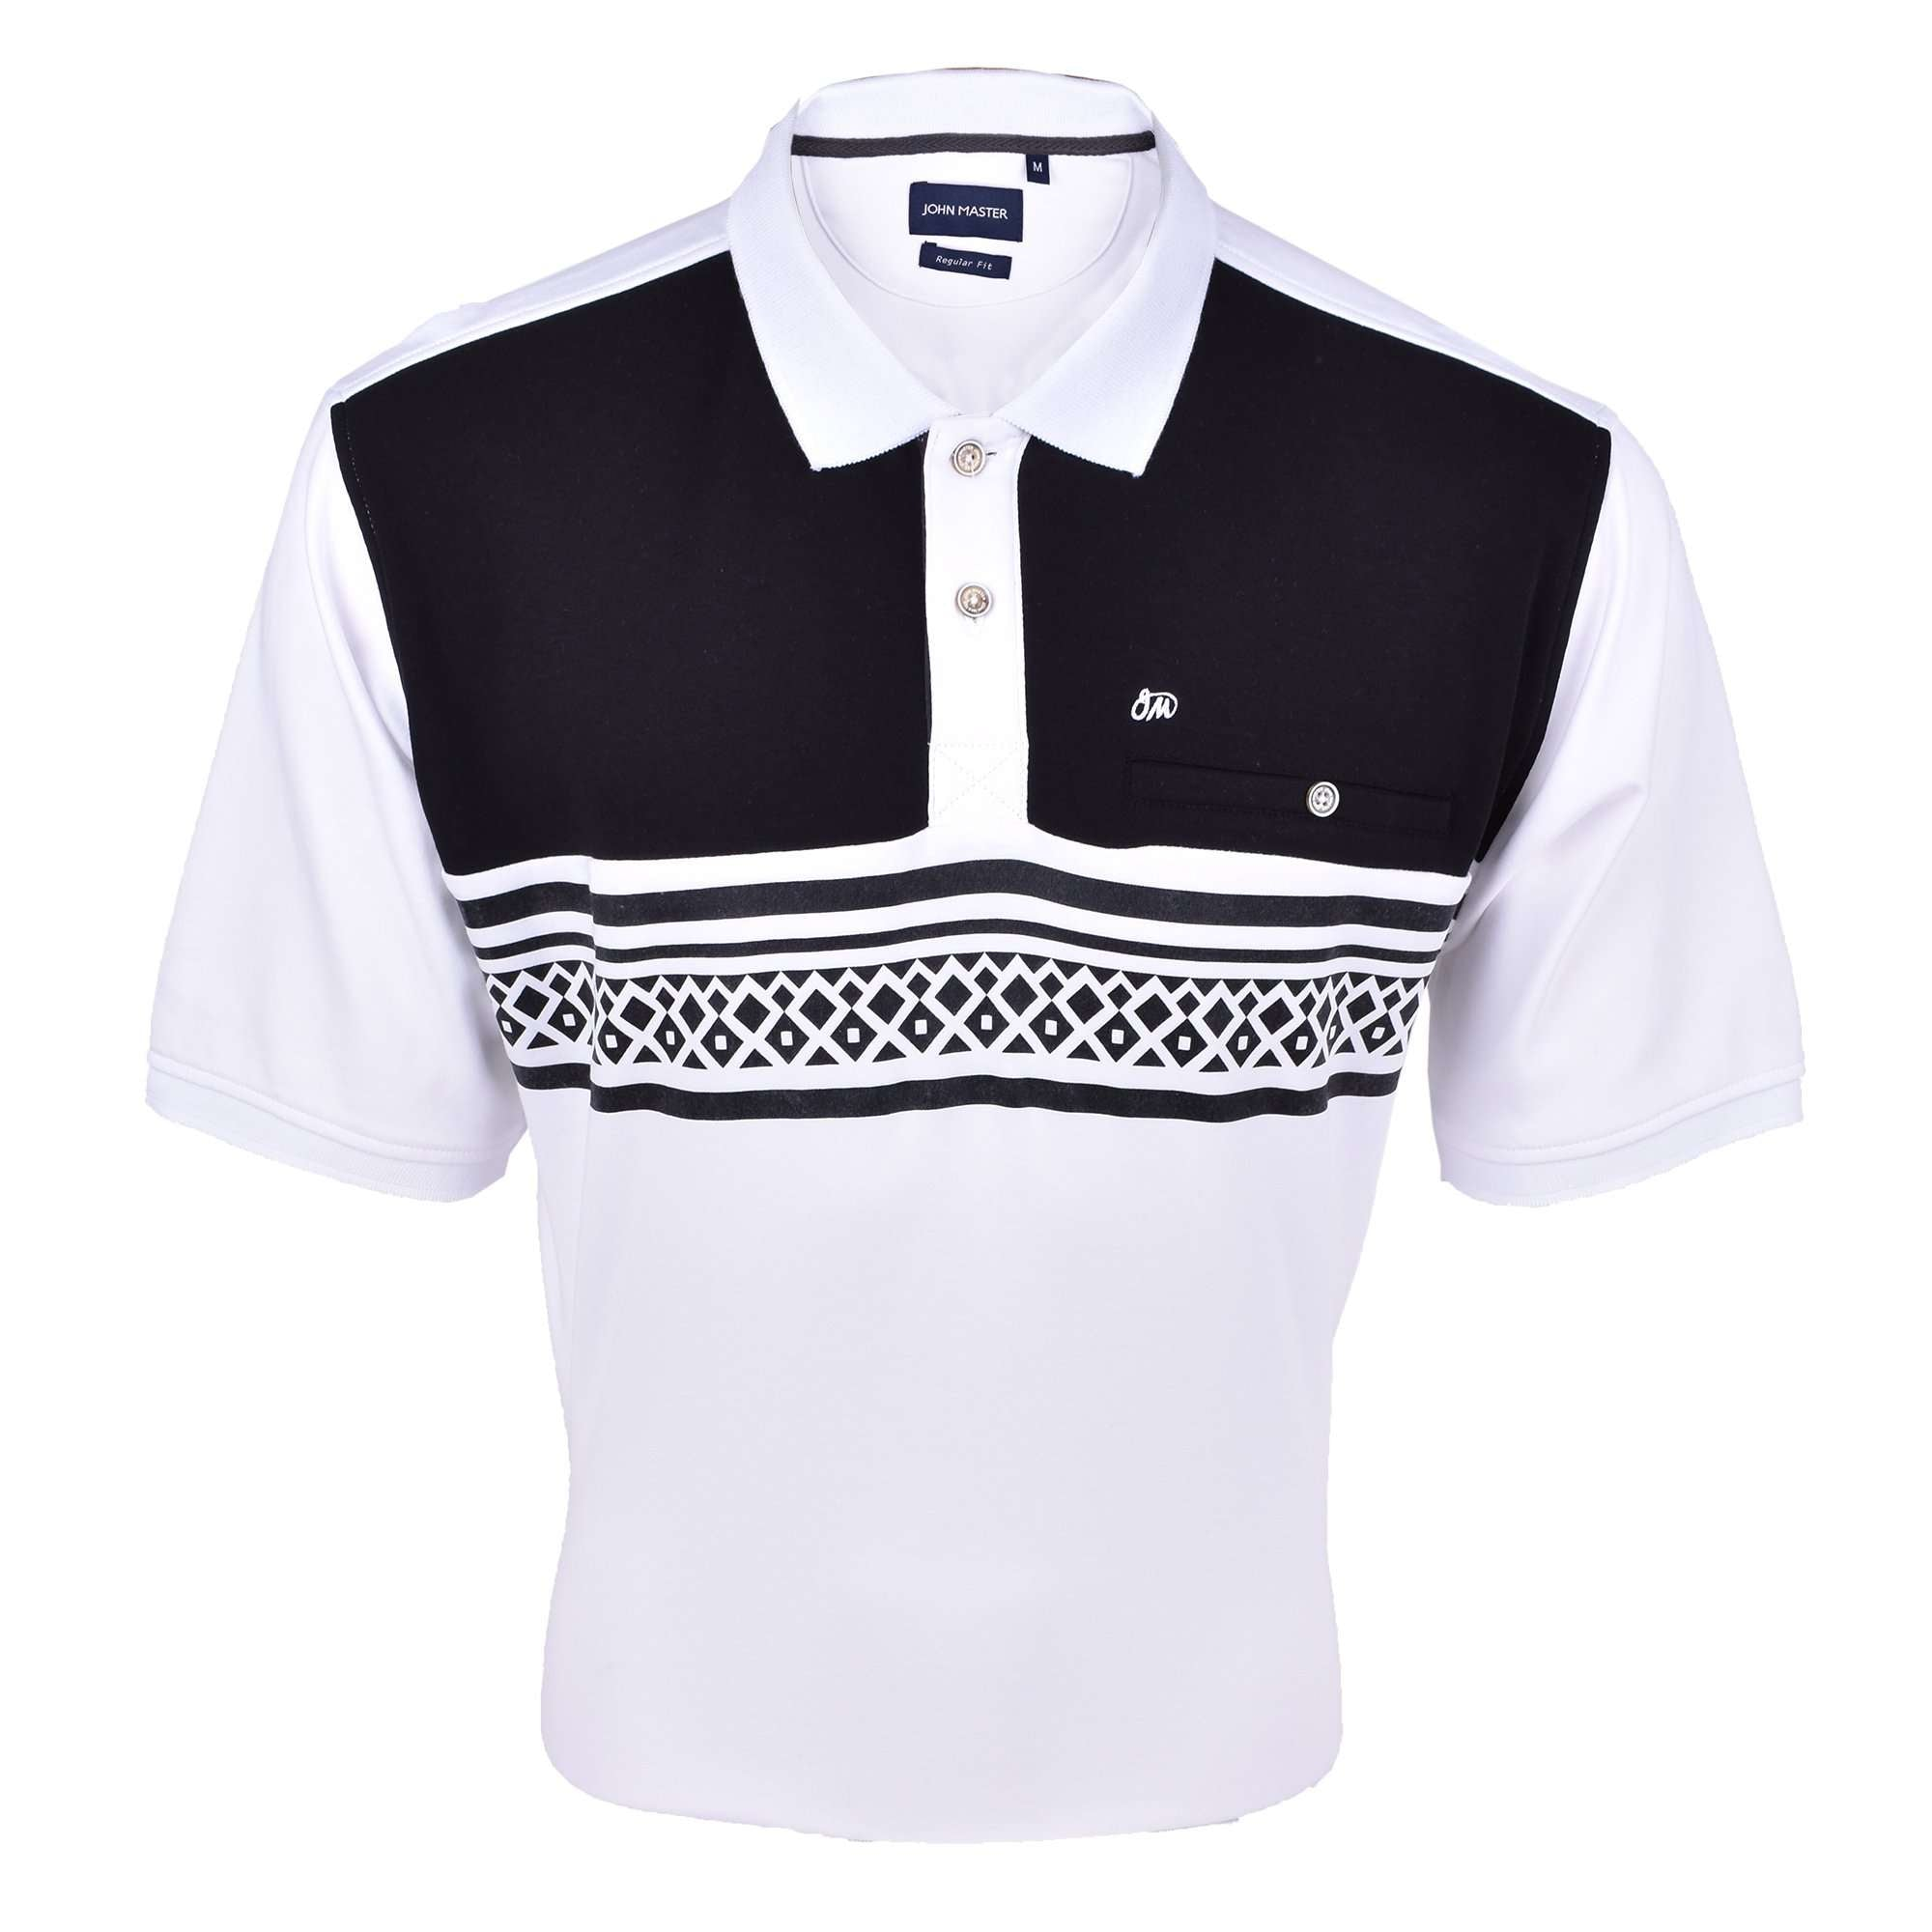 John Master Men Casual Regular Fit Polo Tee White 8008002 : Buy John Master online at CMG.MY